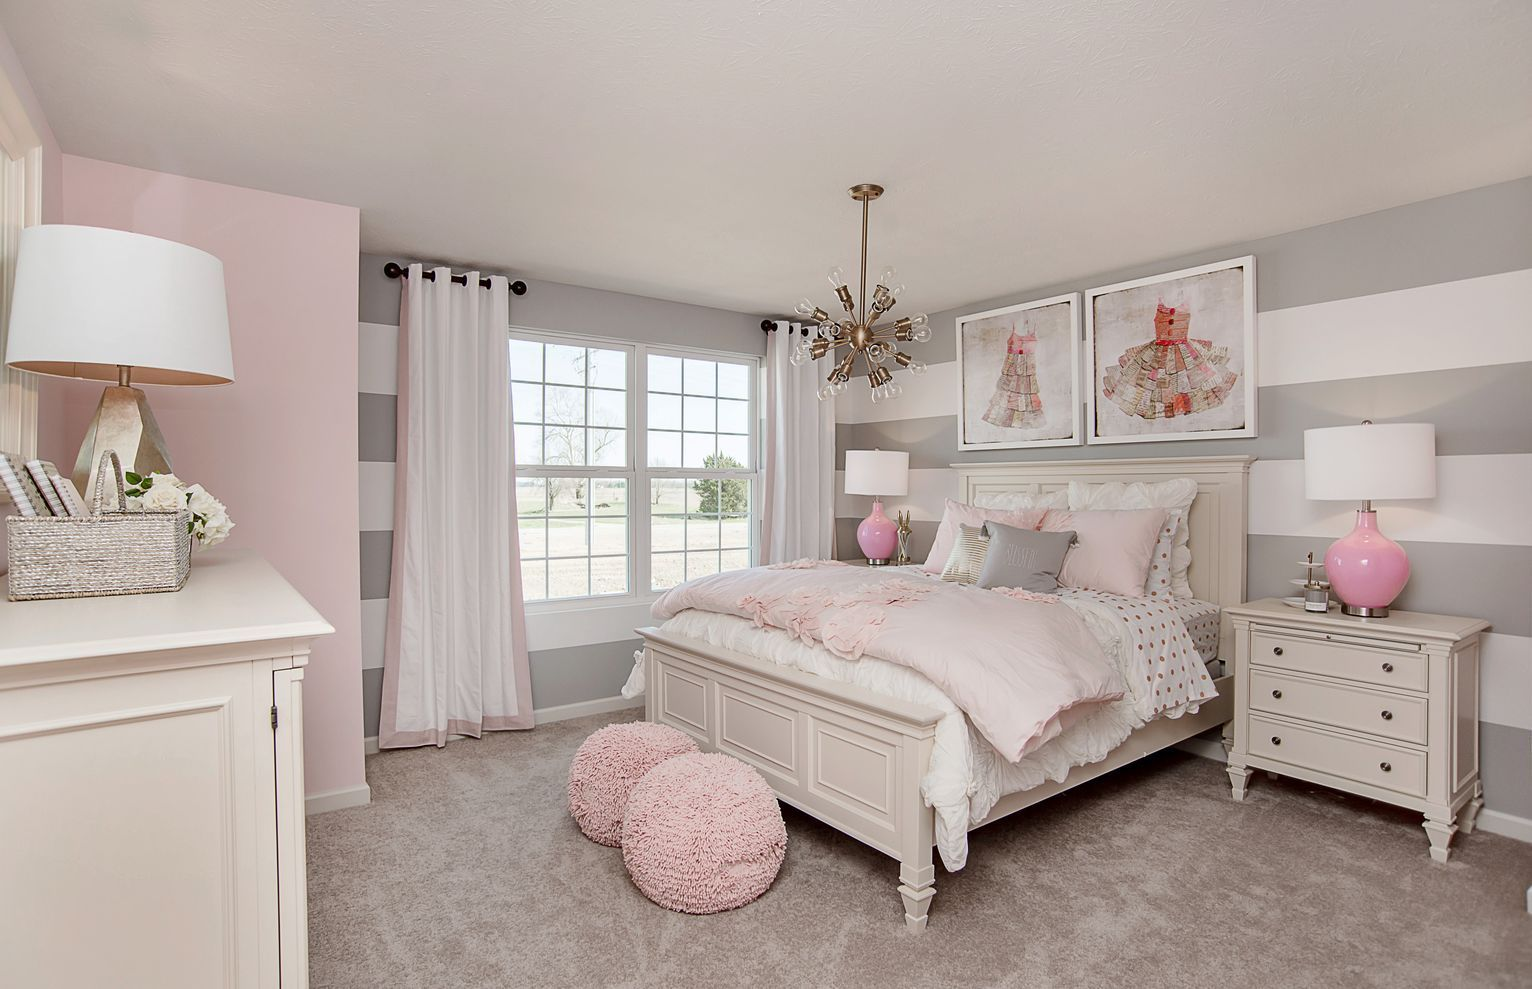 Cute apartment bedroom ideas you will love 48 id es d co - Cute small room ideas ...